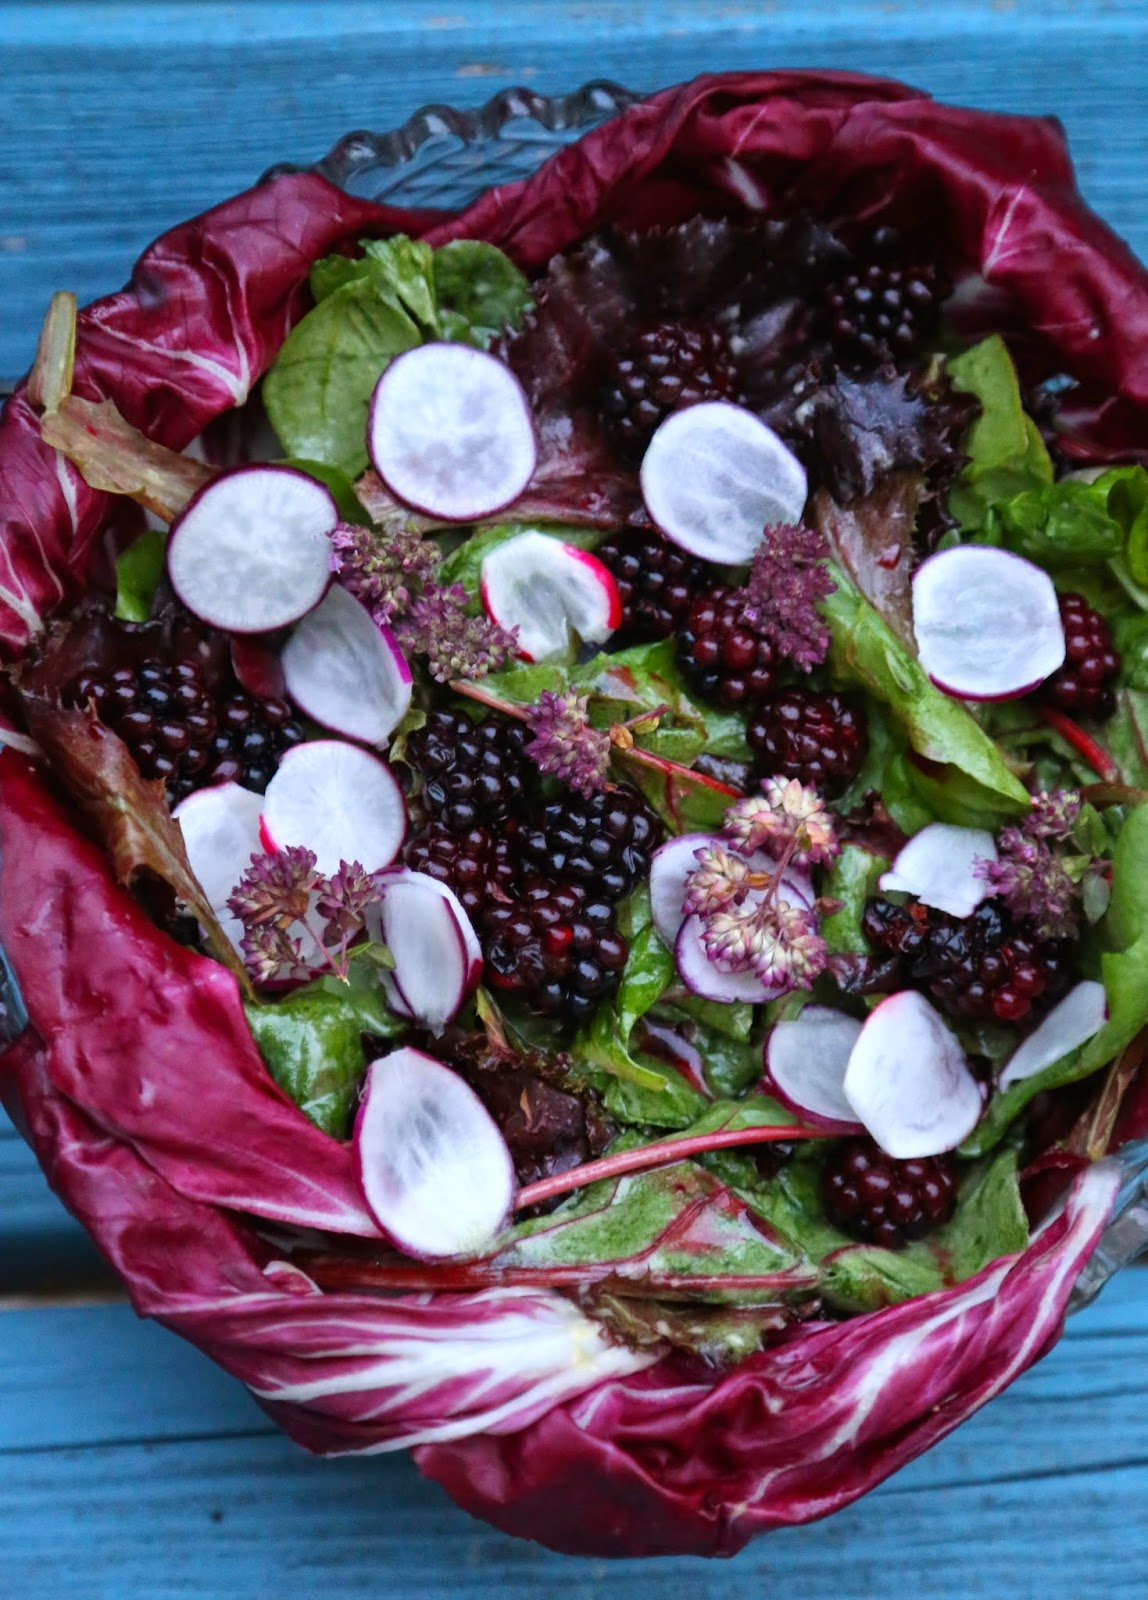 pickled blackberry salad with radicchio and radishes